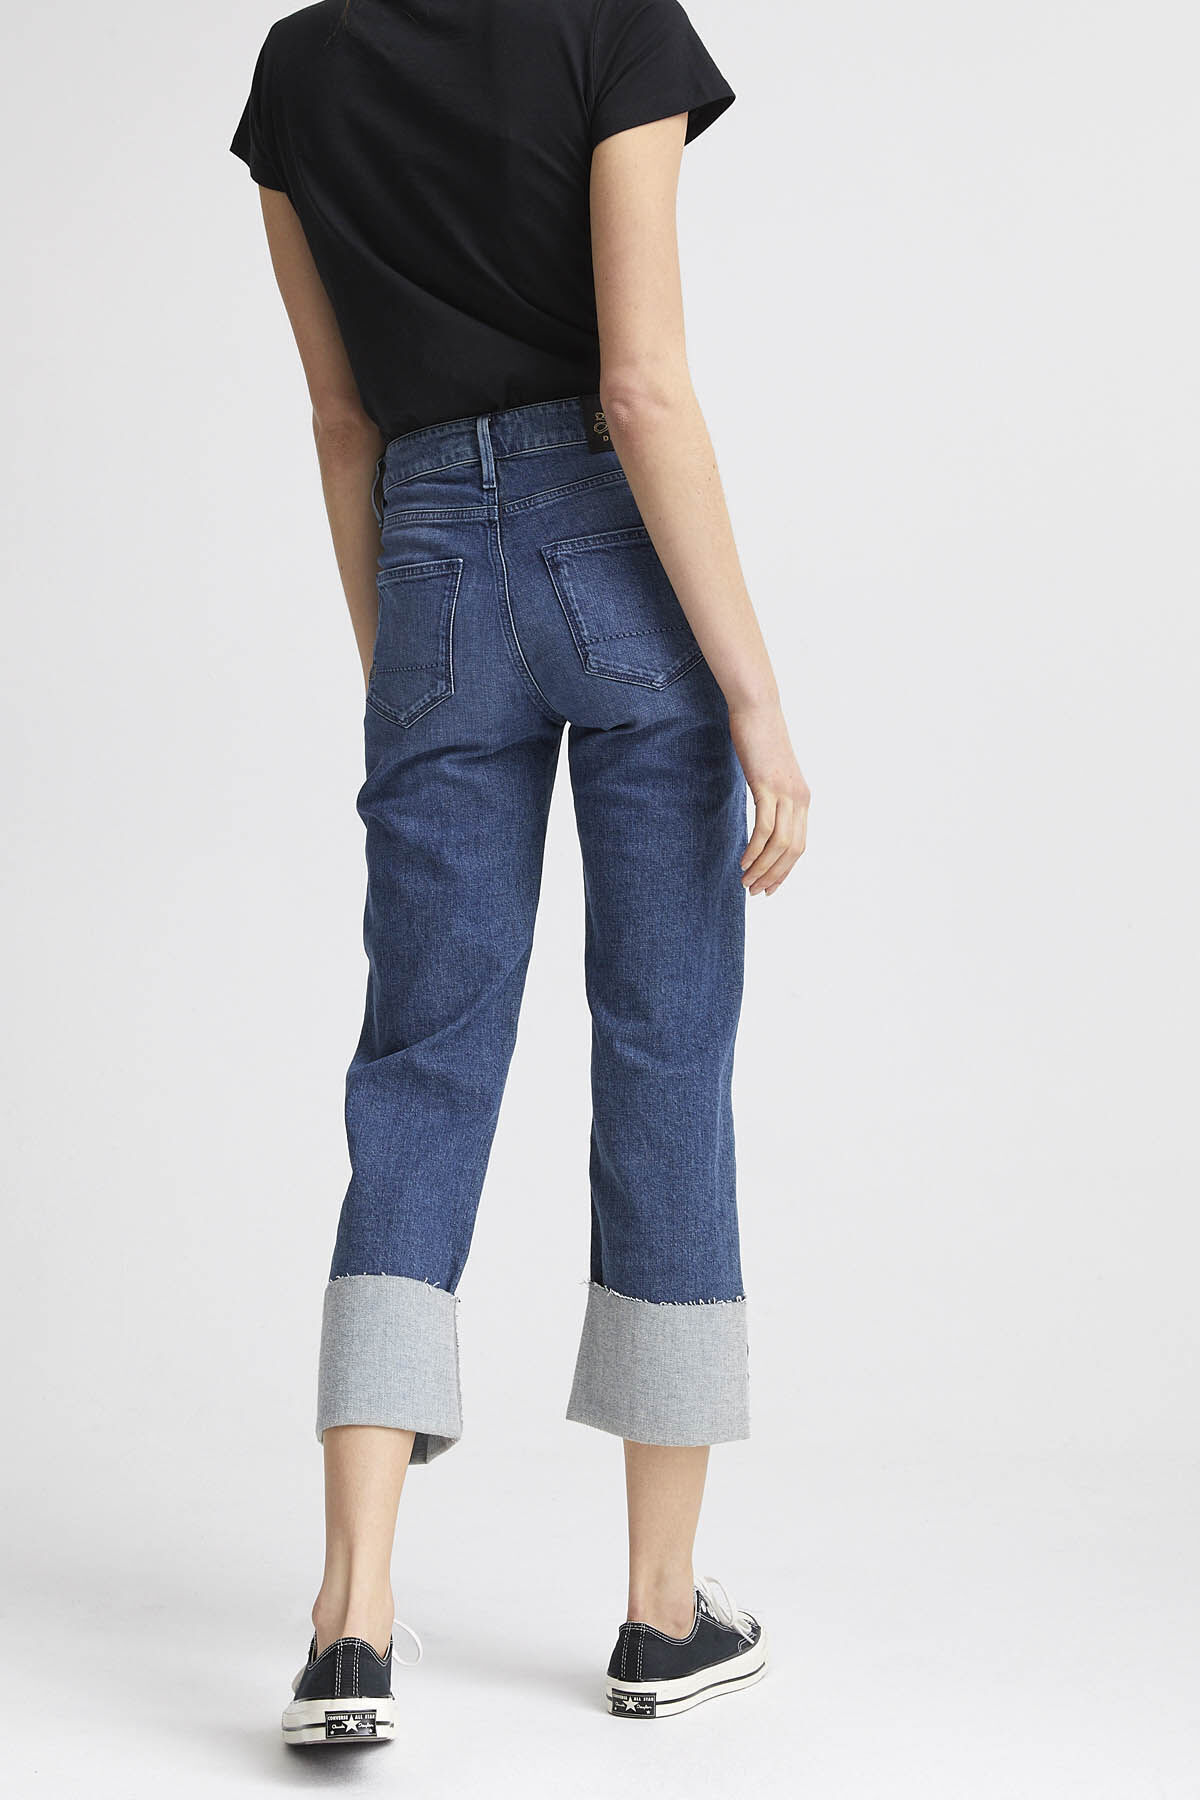 KELLY Indigo Organic Cotton Denim - Wide Leg Fit